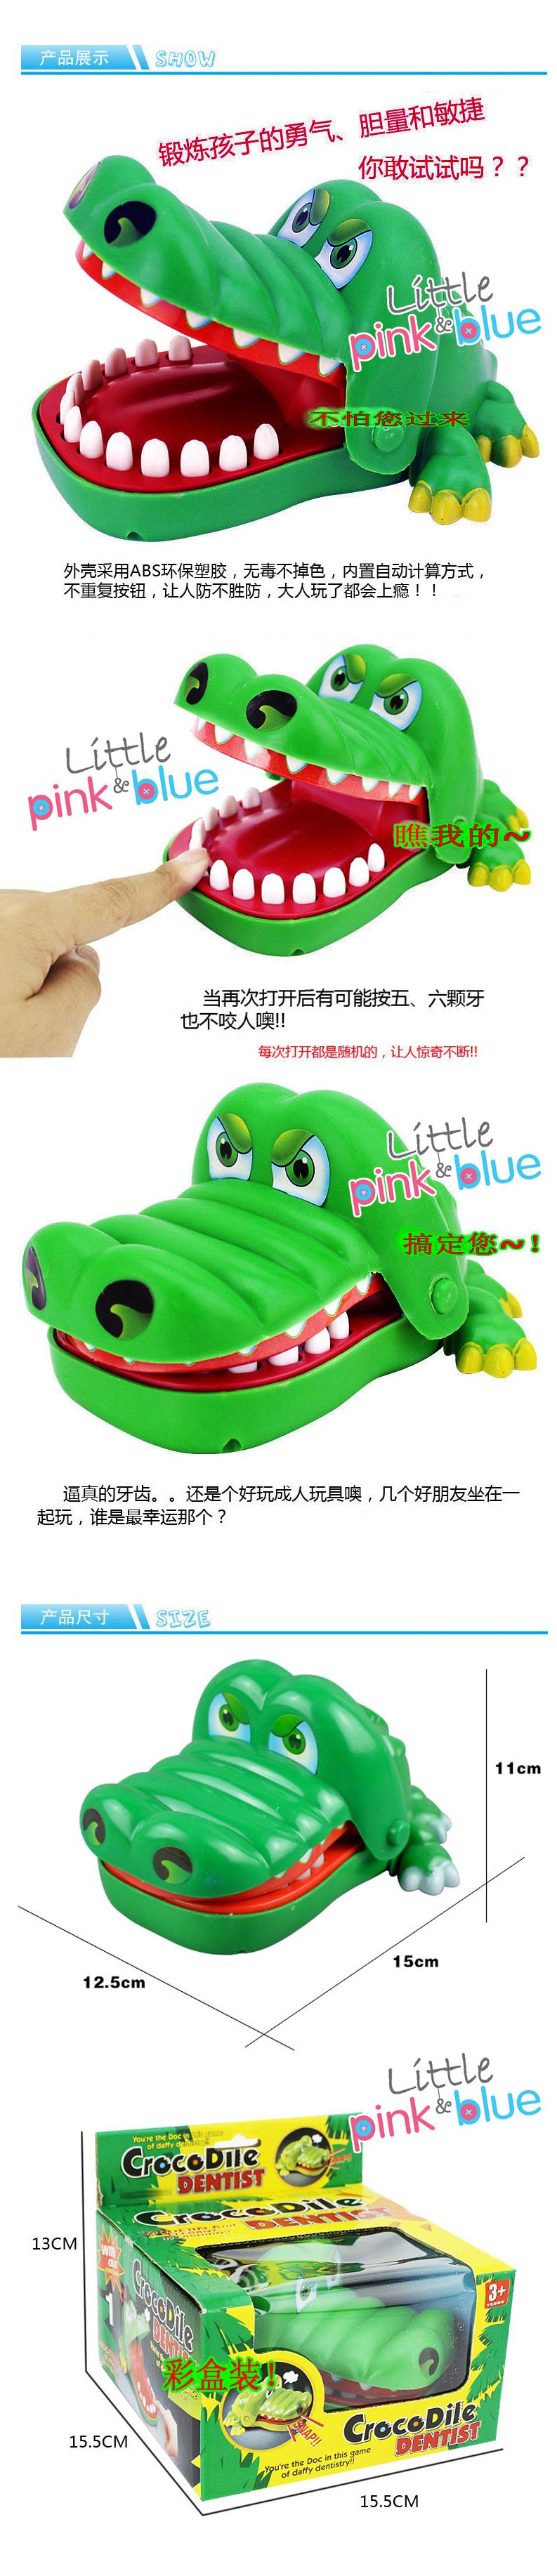 Crocodile Dentist Finger Snap Game Fun Toy